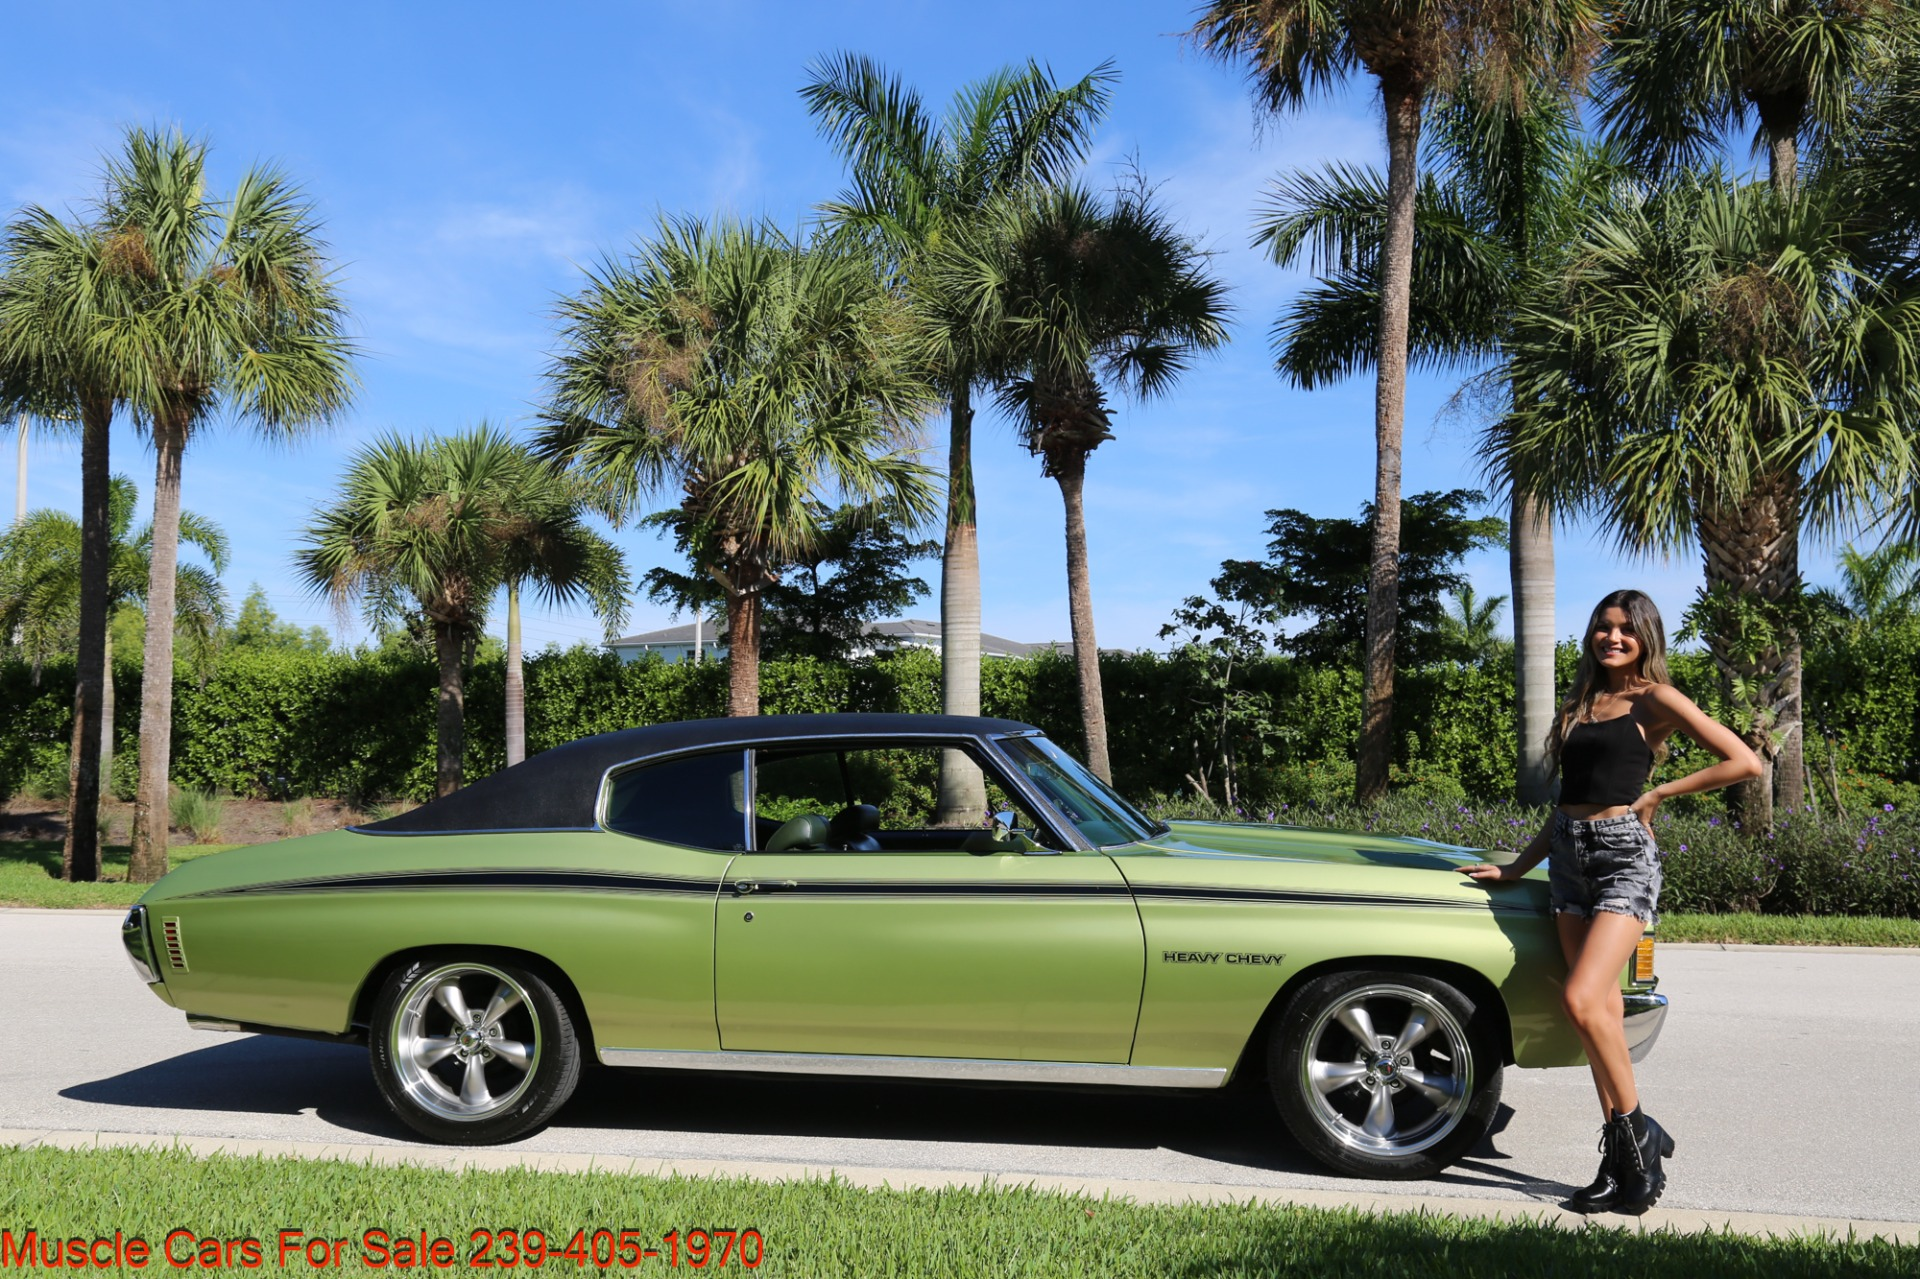 Used 1972 Chevrolet Chevelle Heavy Chevy Trim for sale $34,000 at Muscle Cars for Sale Inc. in Fort Myers FL 33912 1